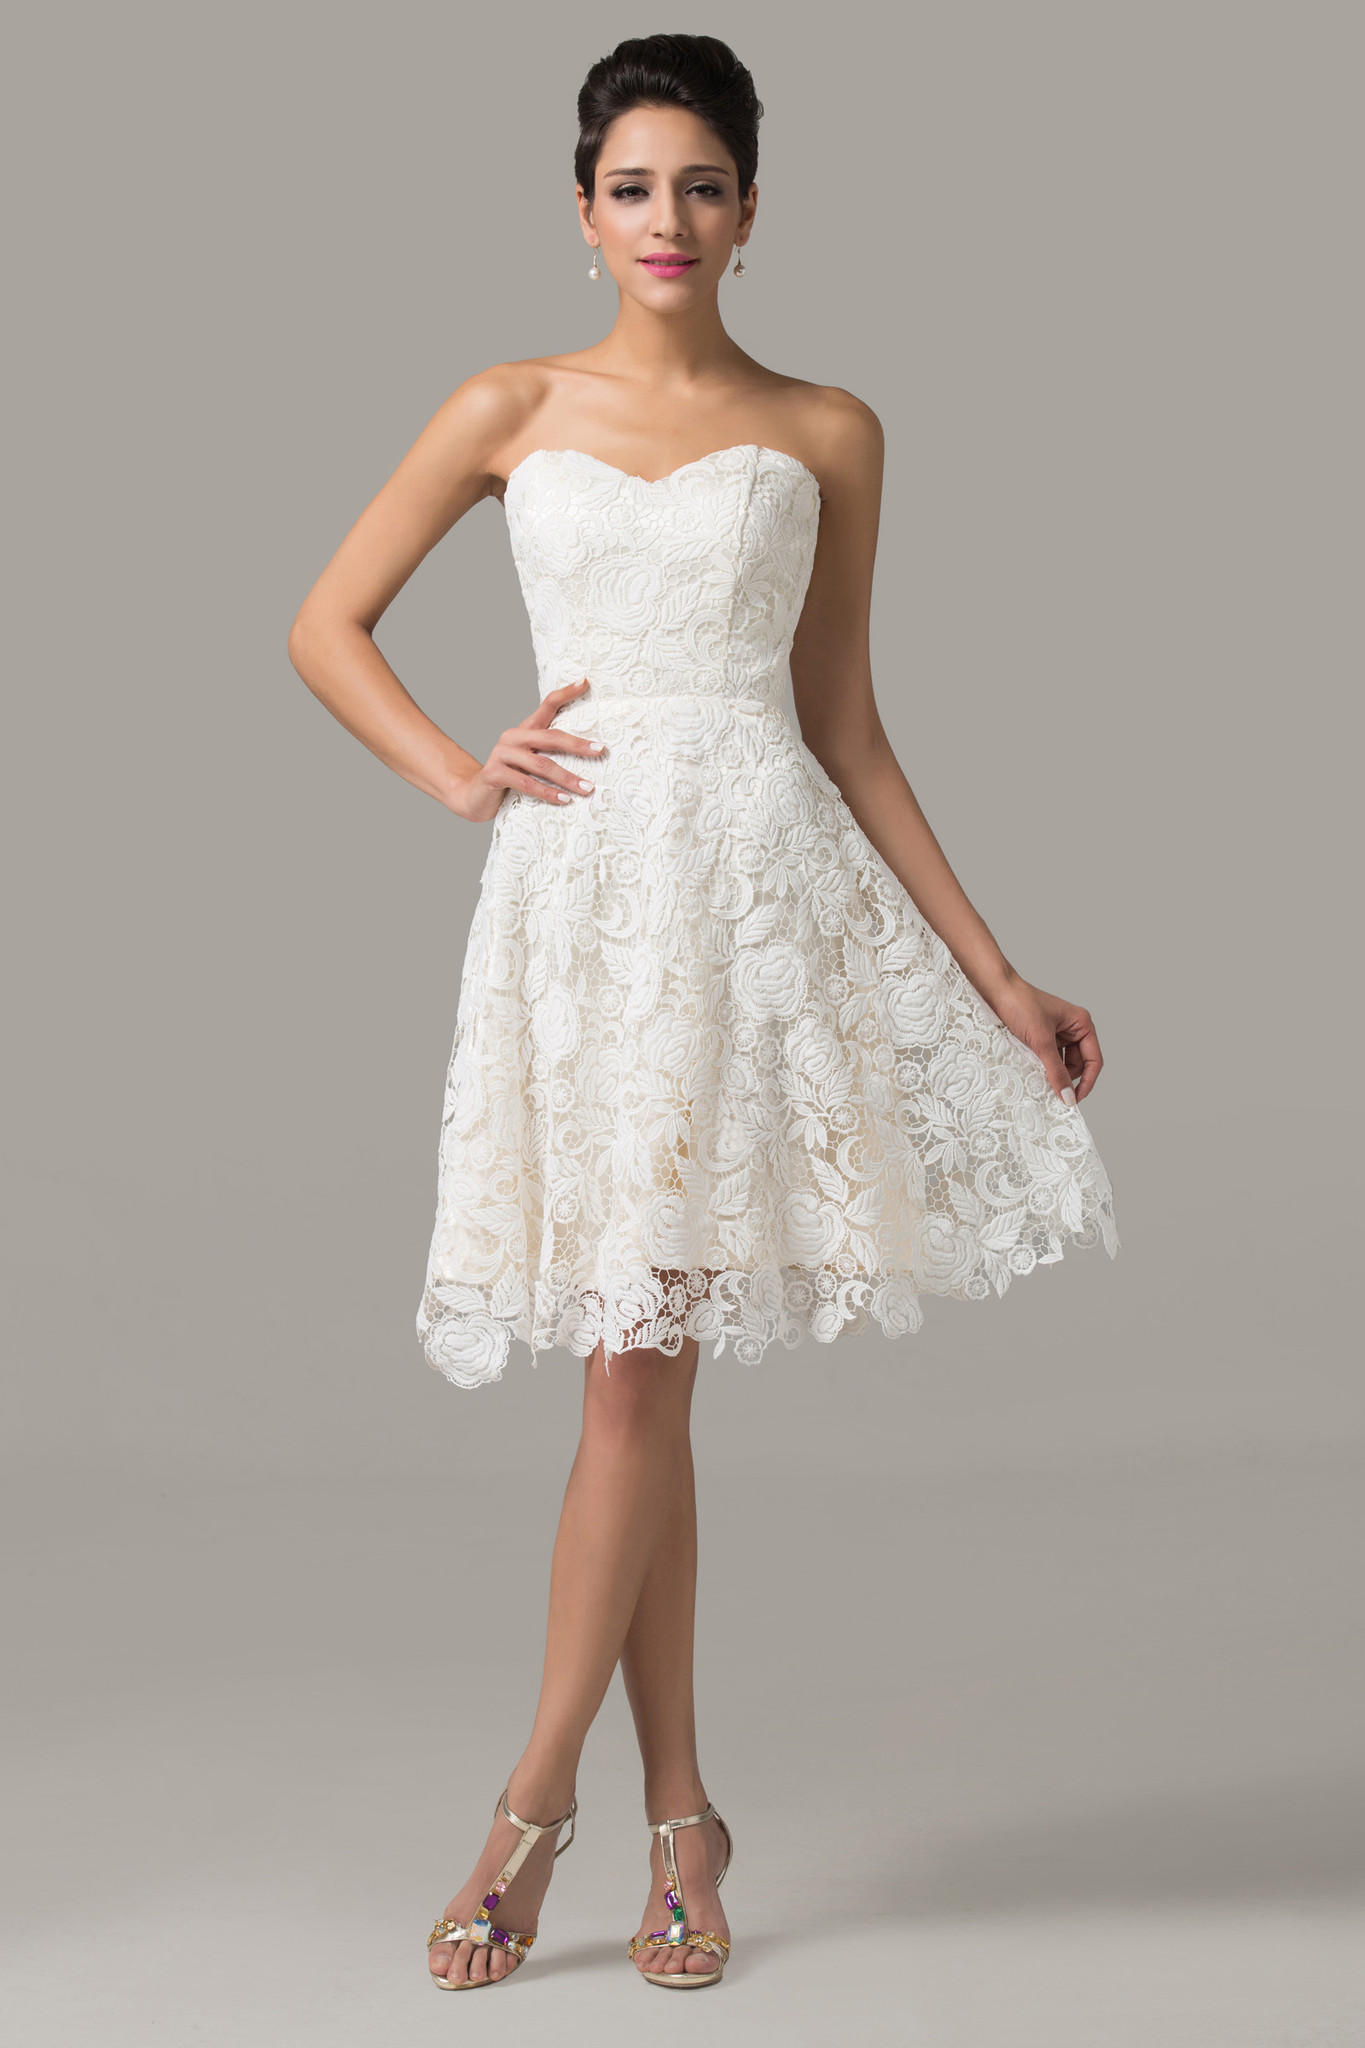 Ivory Lace Strapless Dress